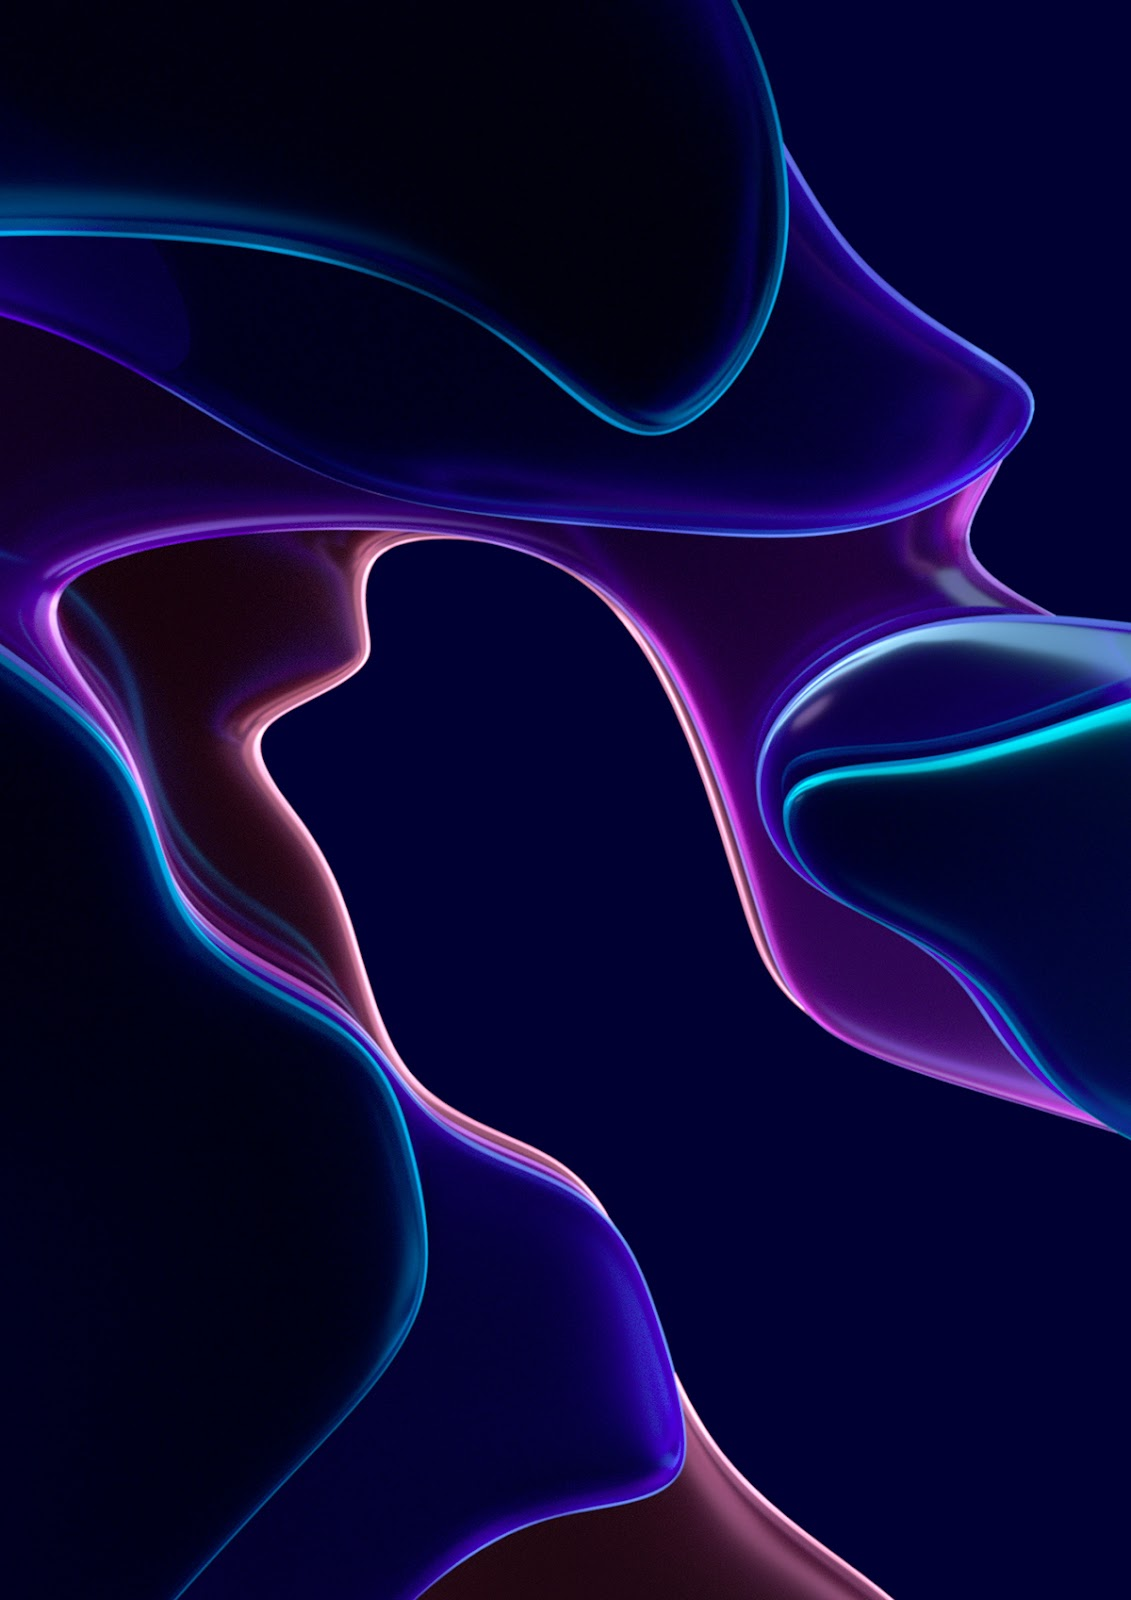 3D abstract curves flow keyvisuals tech Technology Wallpapers minimal shapes